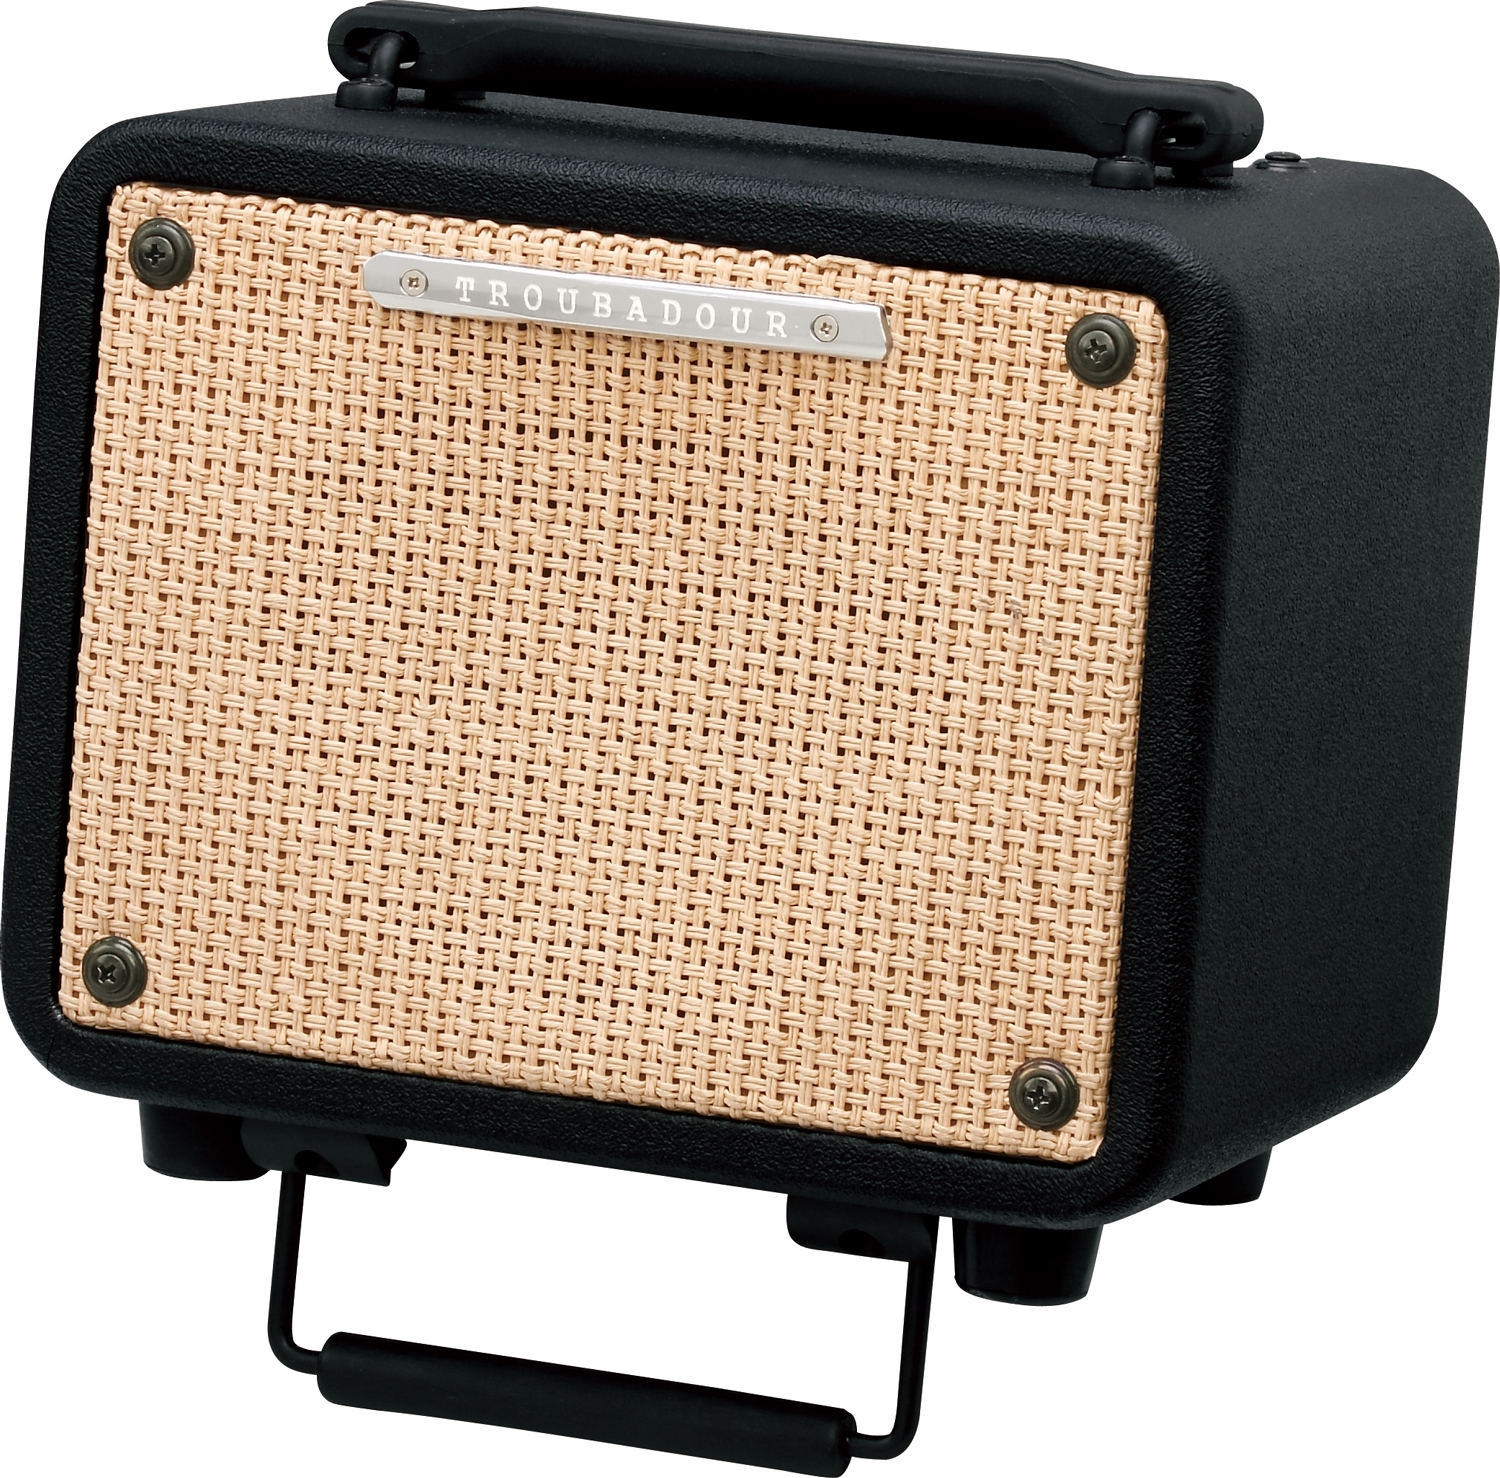 musicworks acoustic guitar amplifiers acoustic guitar amps ibanez troubadour acoustic amp. Black Bedroom Furniture Sets. Home Design Ideas